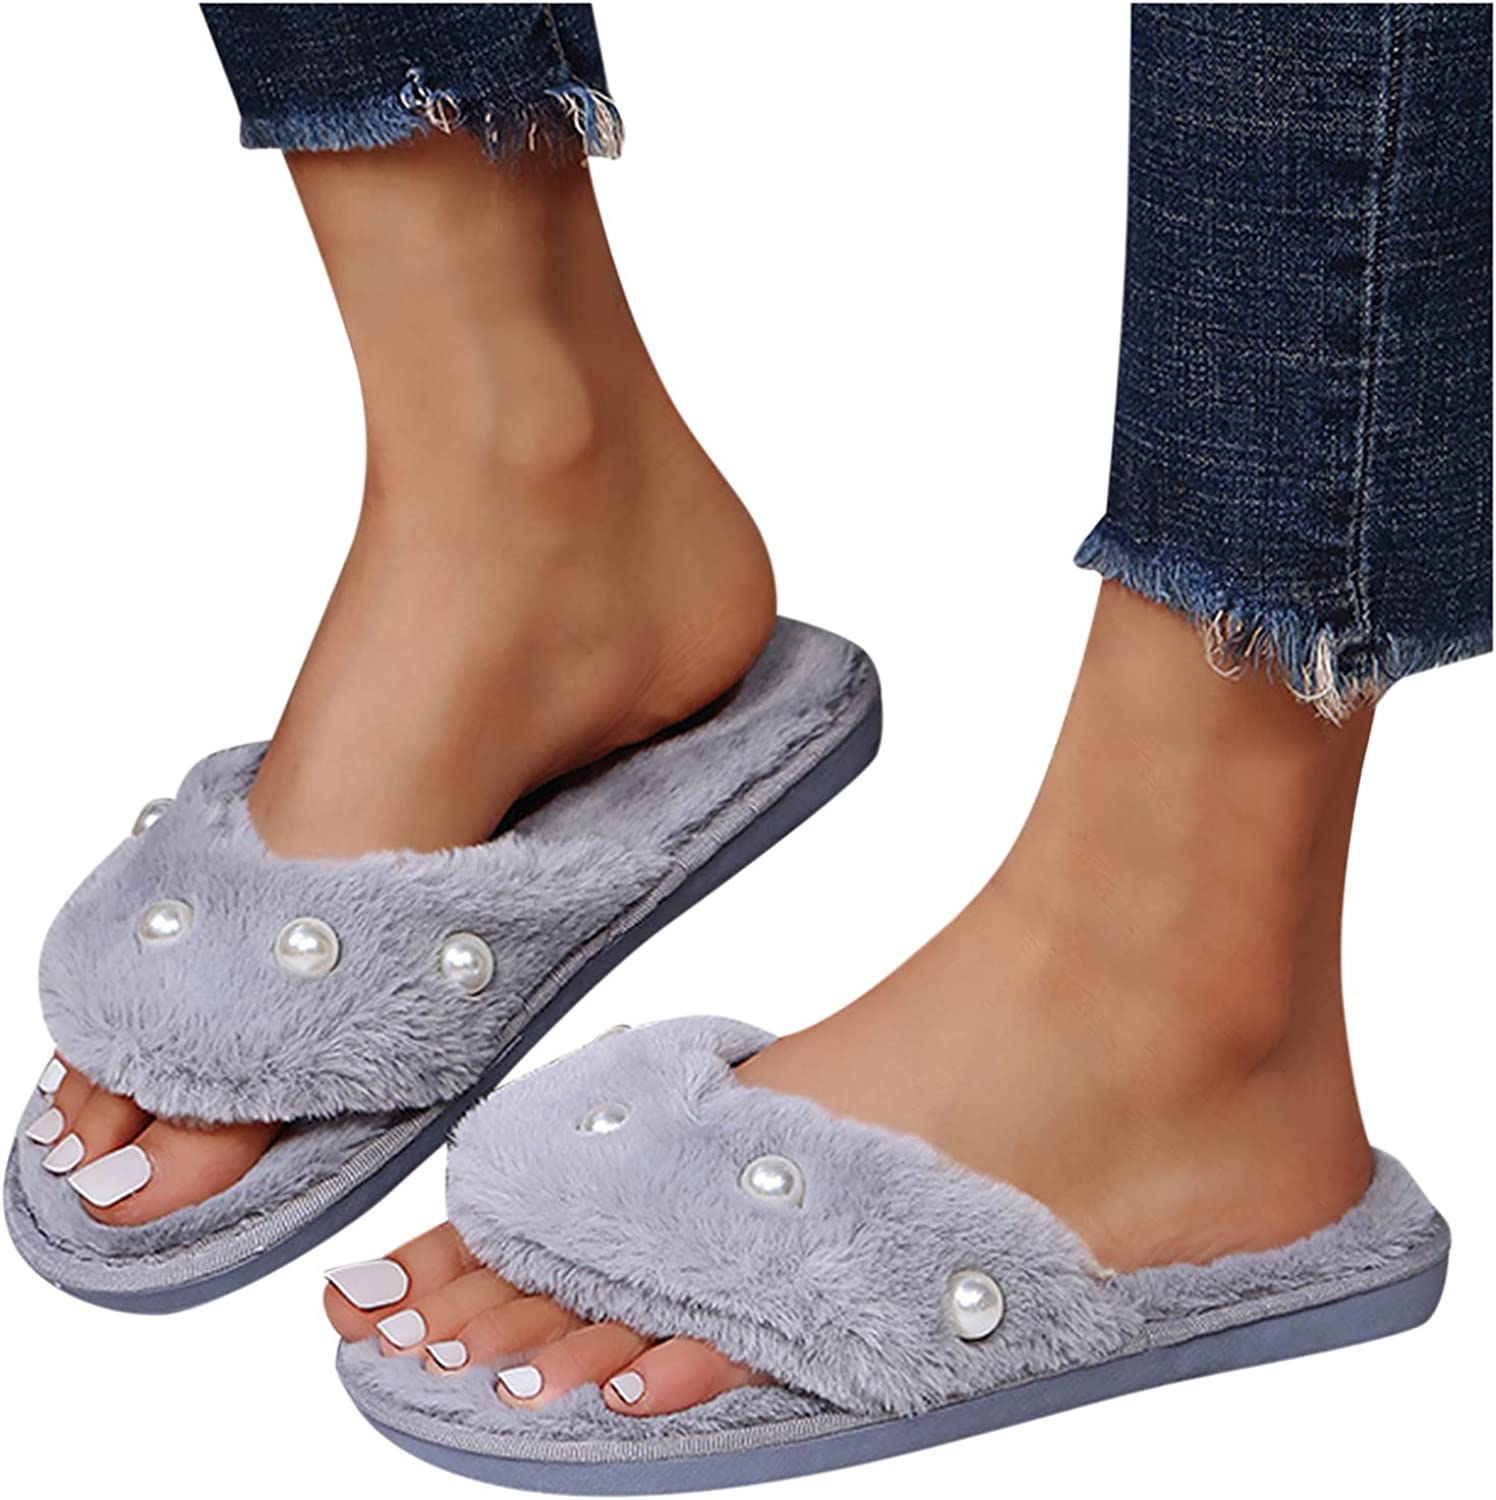 Pure Color Fuzzy Slippers for specialty shop Women Wholesale Plush House Soft Cozy Pearl